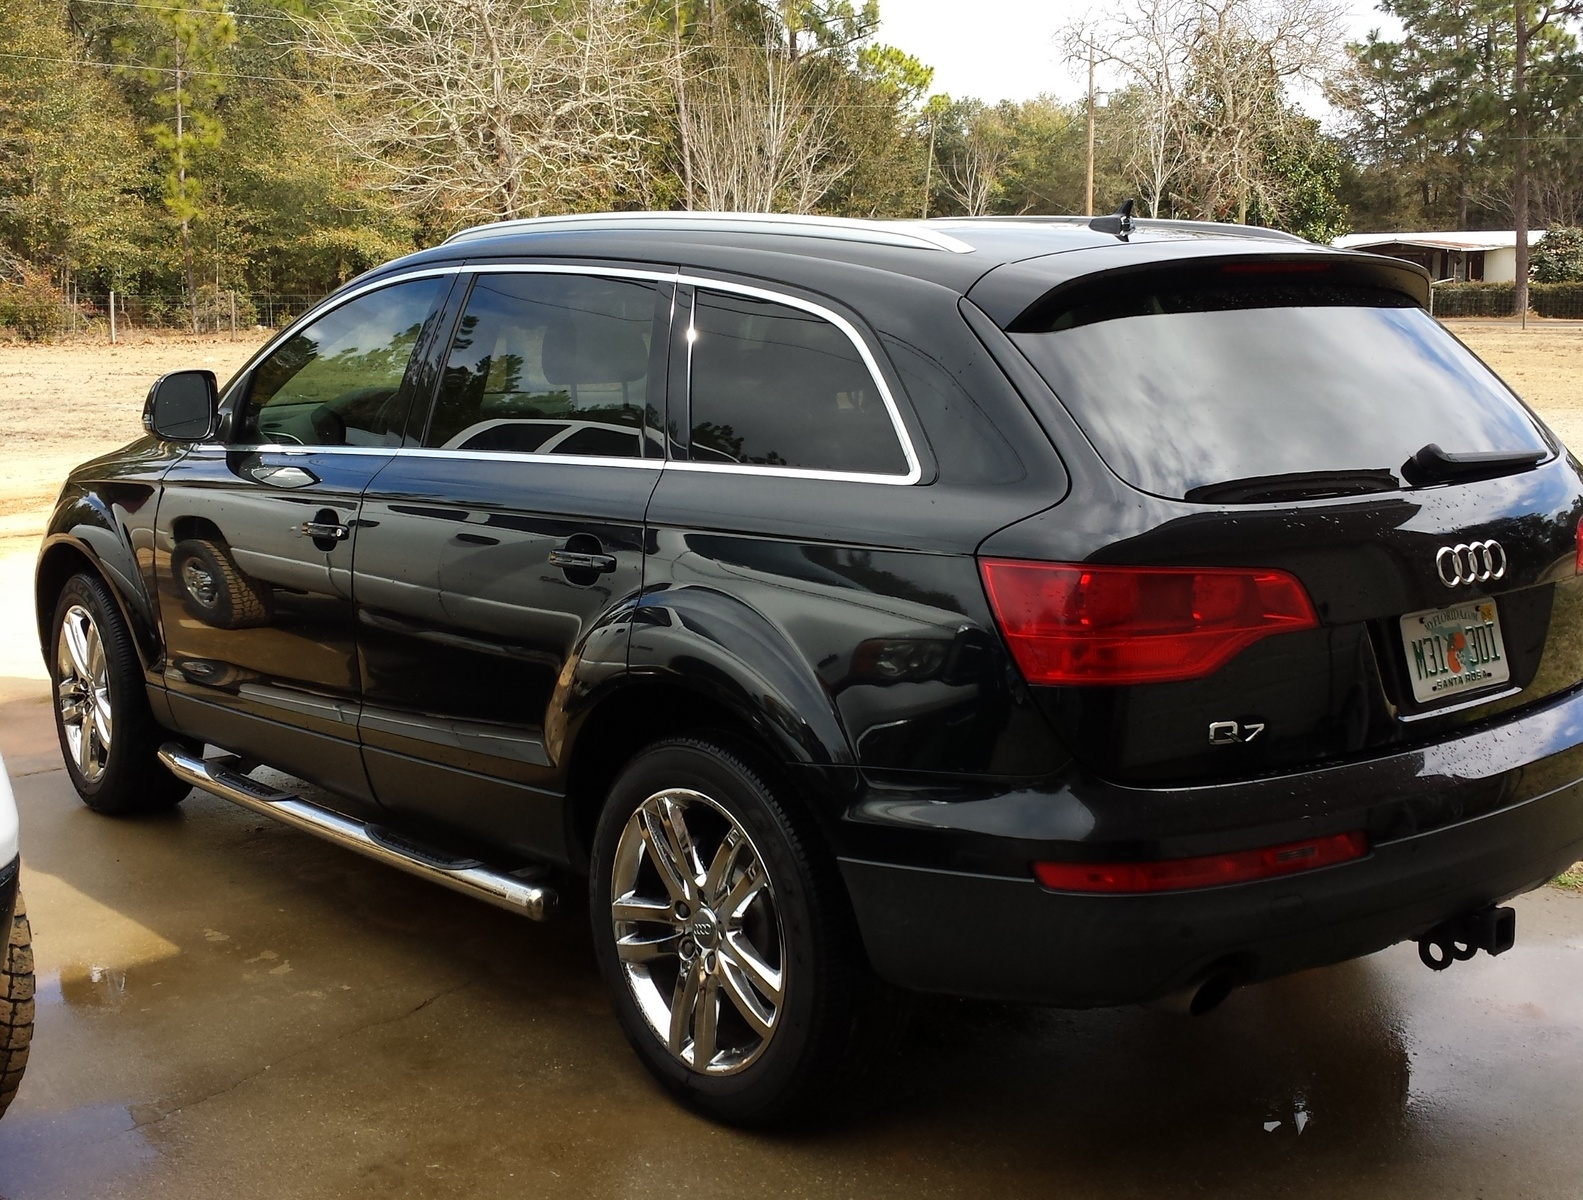 Used Audi Q7 For Sale  CarGurus